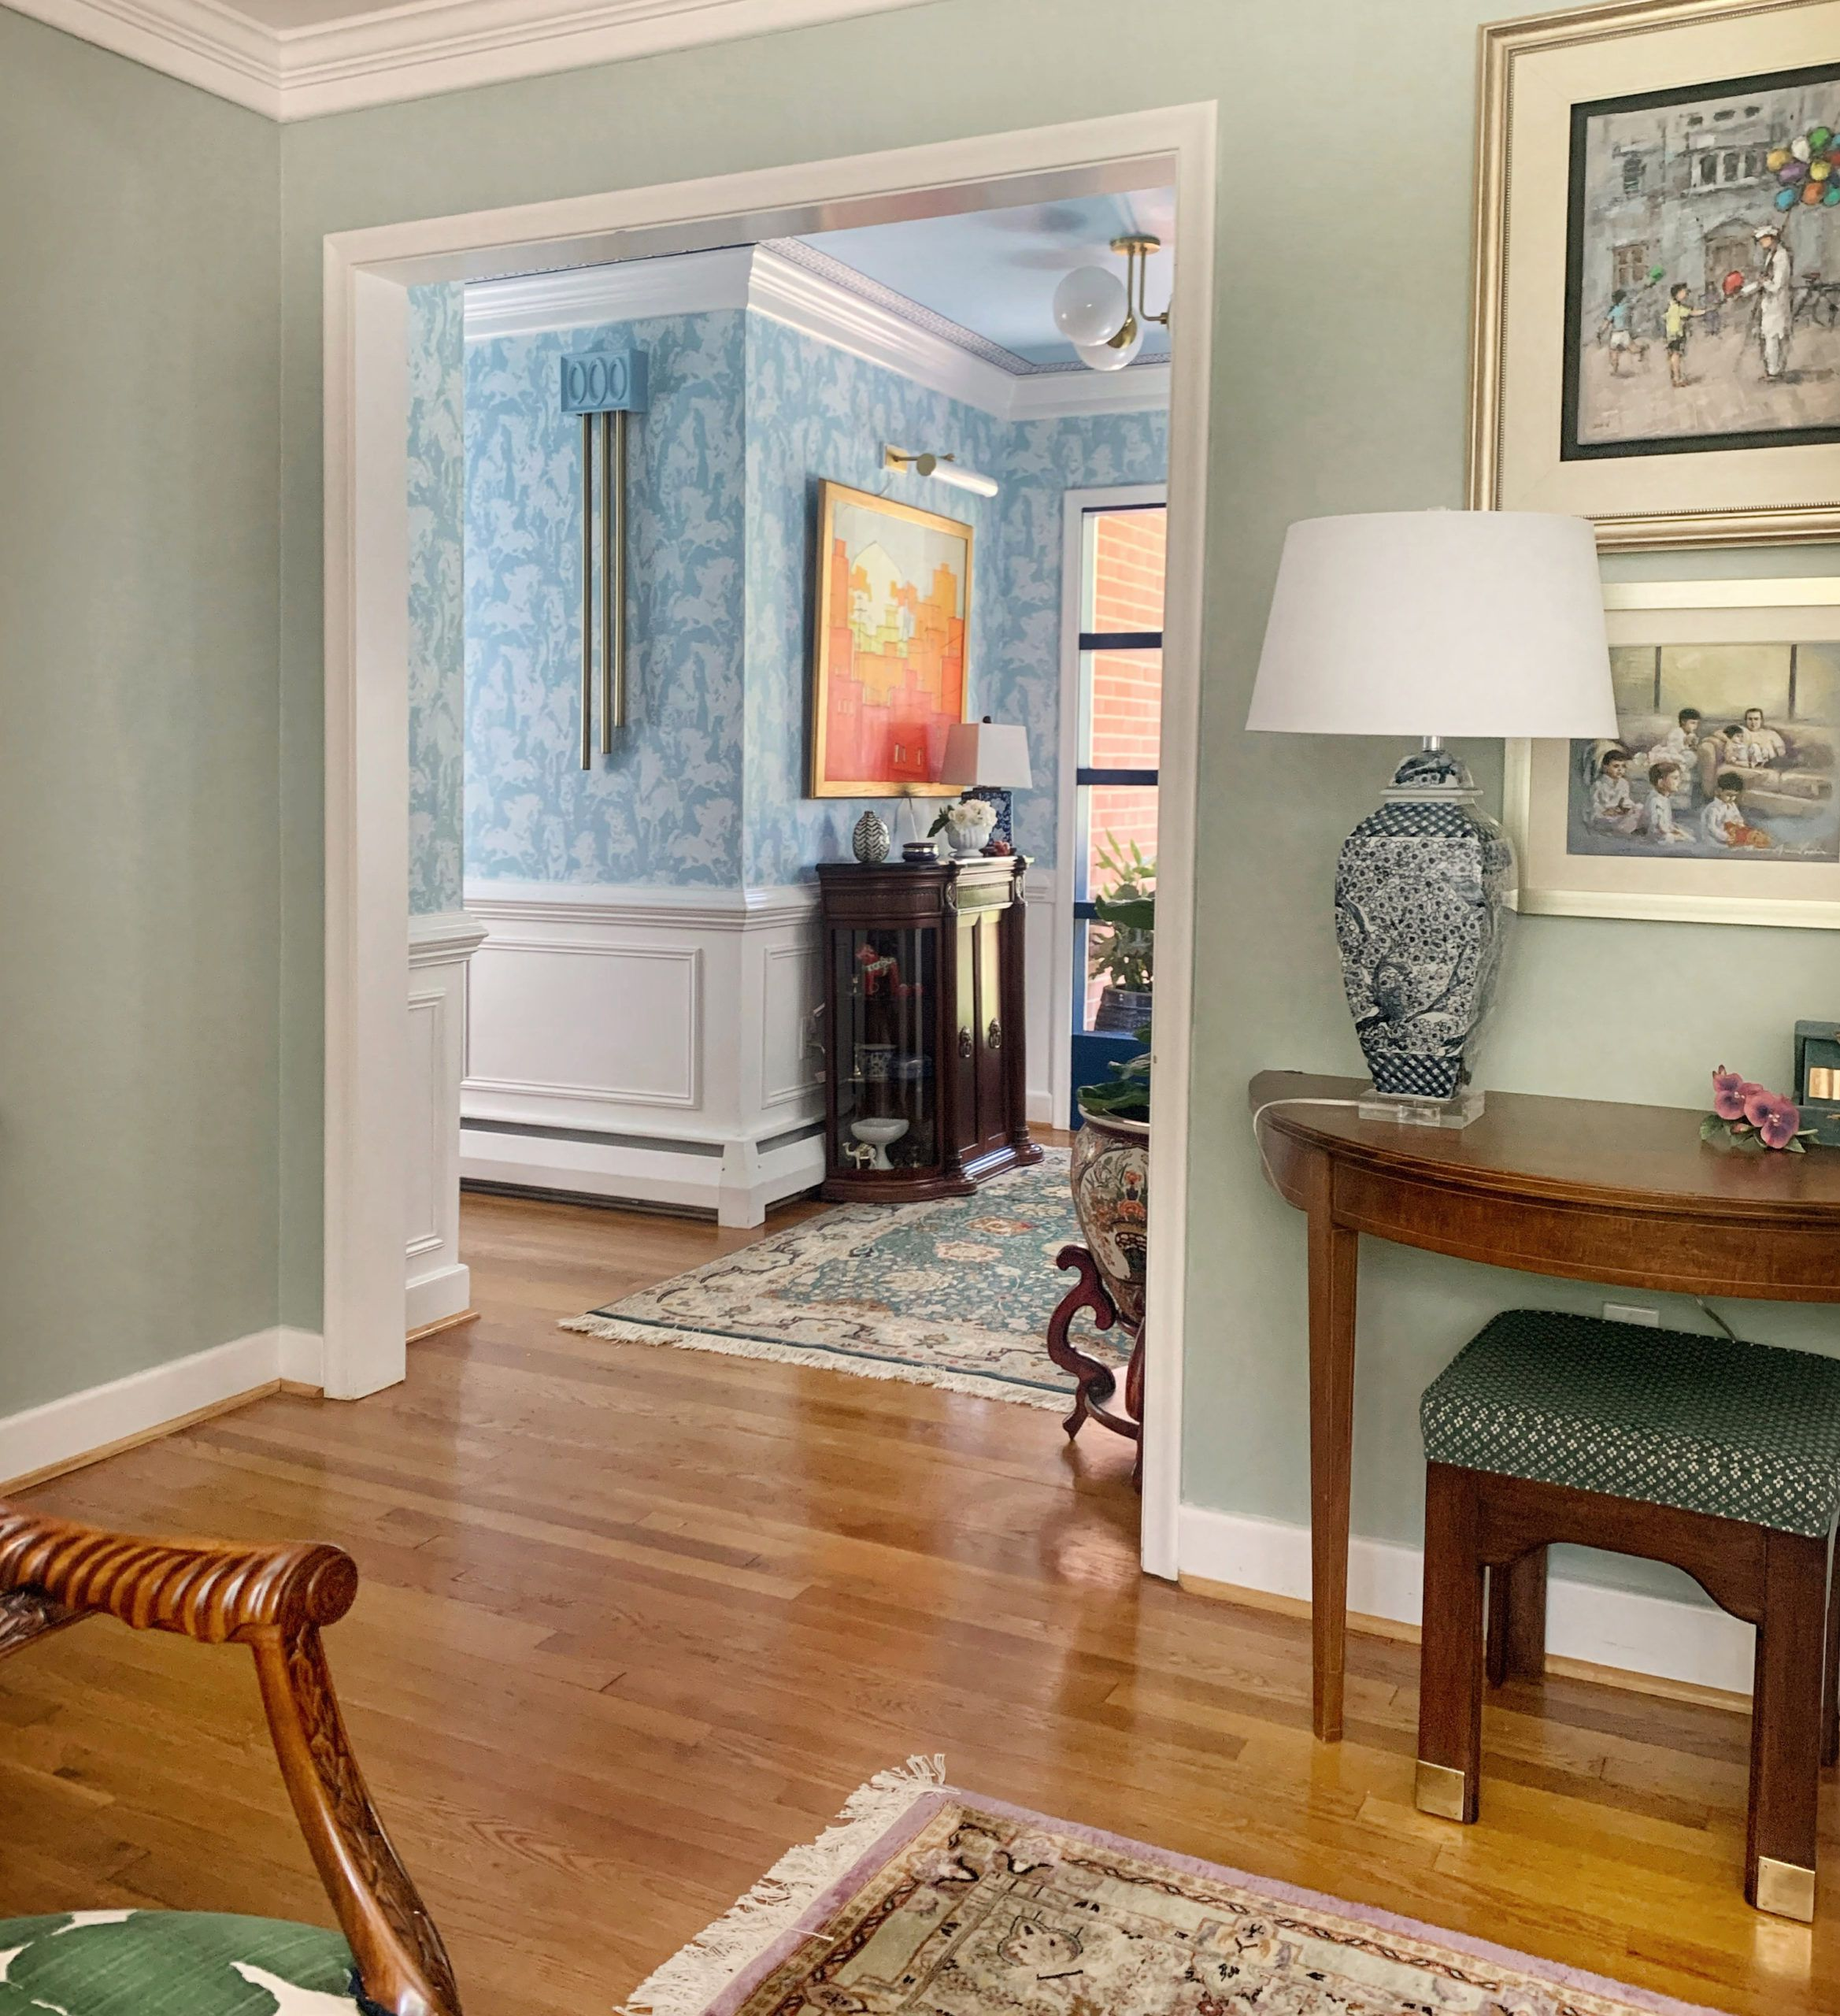 Image of the Entry way makeover by Merh Niazi using the Light Blue Stampede Wallpaper by Milton & King